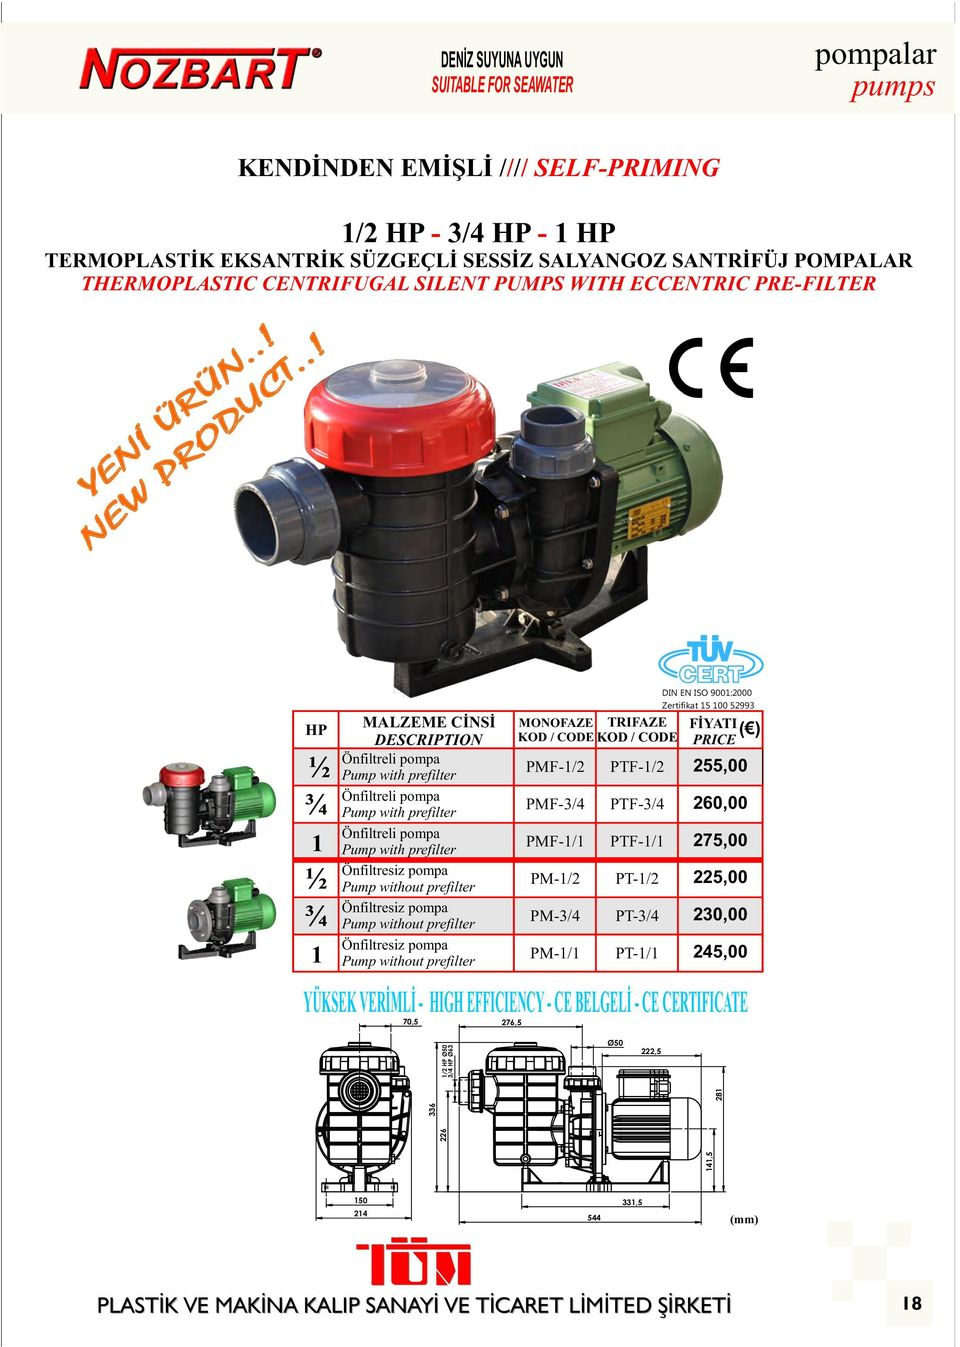 .! HP ½ ¾ 1 ½ ¾ Önfiltreli pompa Pump with prefilter Önfiltreli pompa Pump with prefilter Önfiltreli pompa Pump with prefilter Önfiltresiz pompa Pump without prefilter Önfiltresiz pompa Pump without